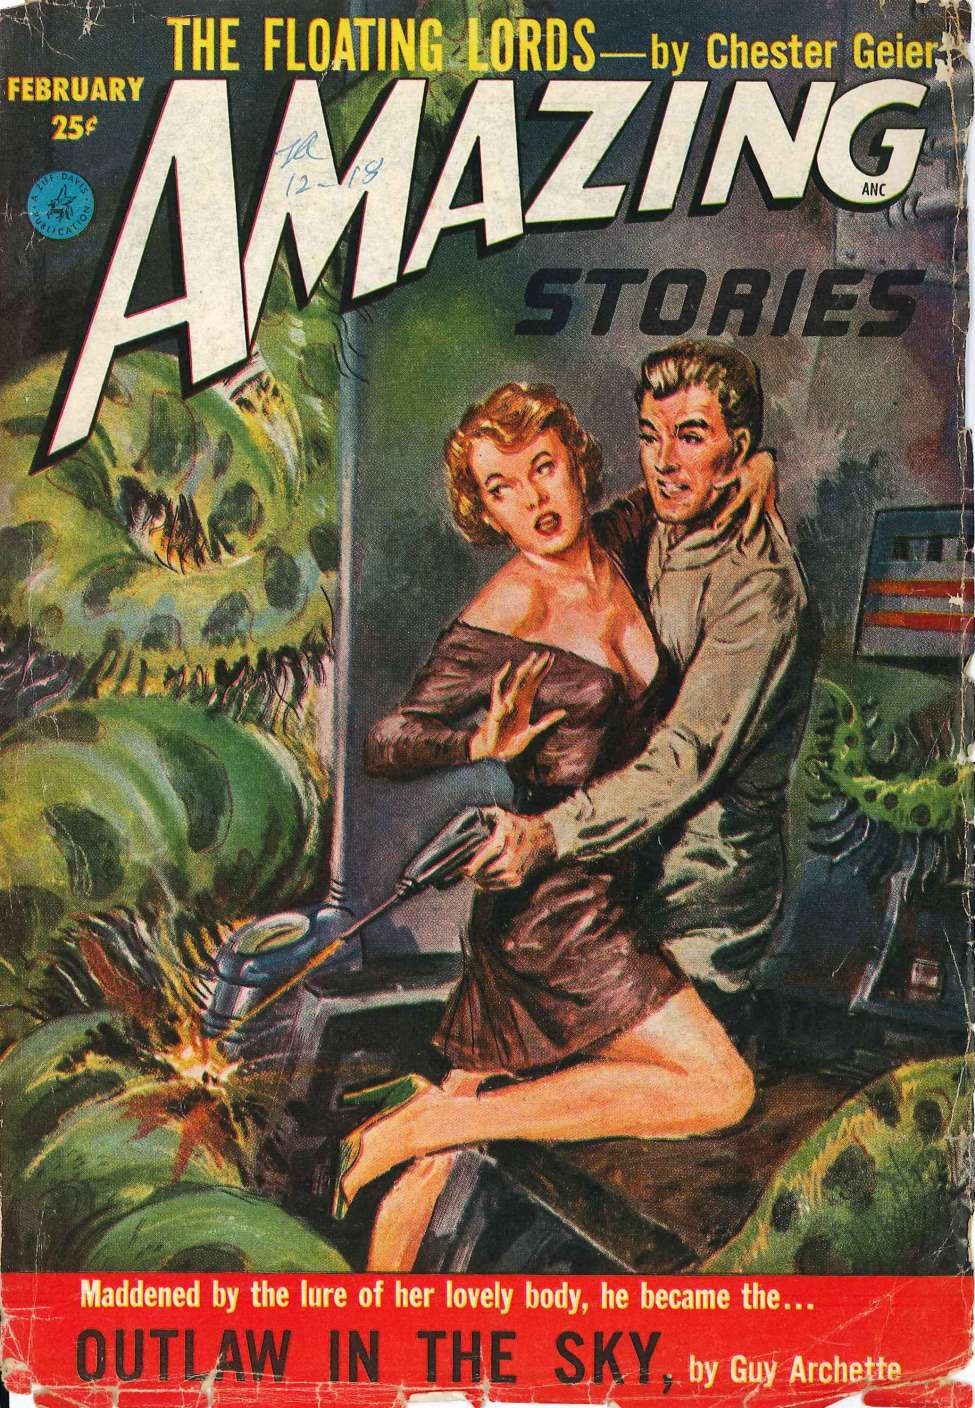 Comic Book Cover For Amazing Stories v27 02 - Outlaw in the Sky - Guy Archette